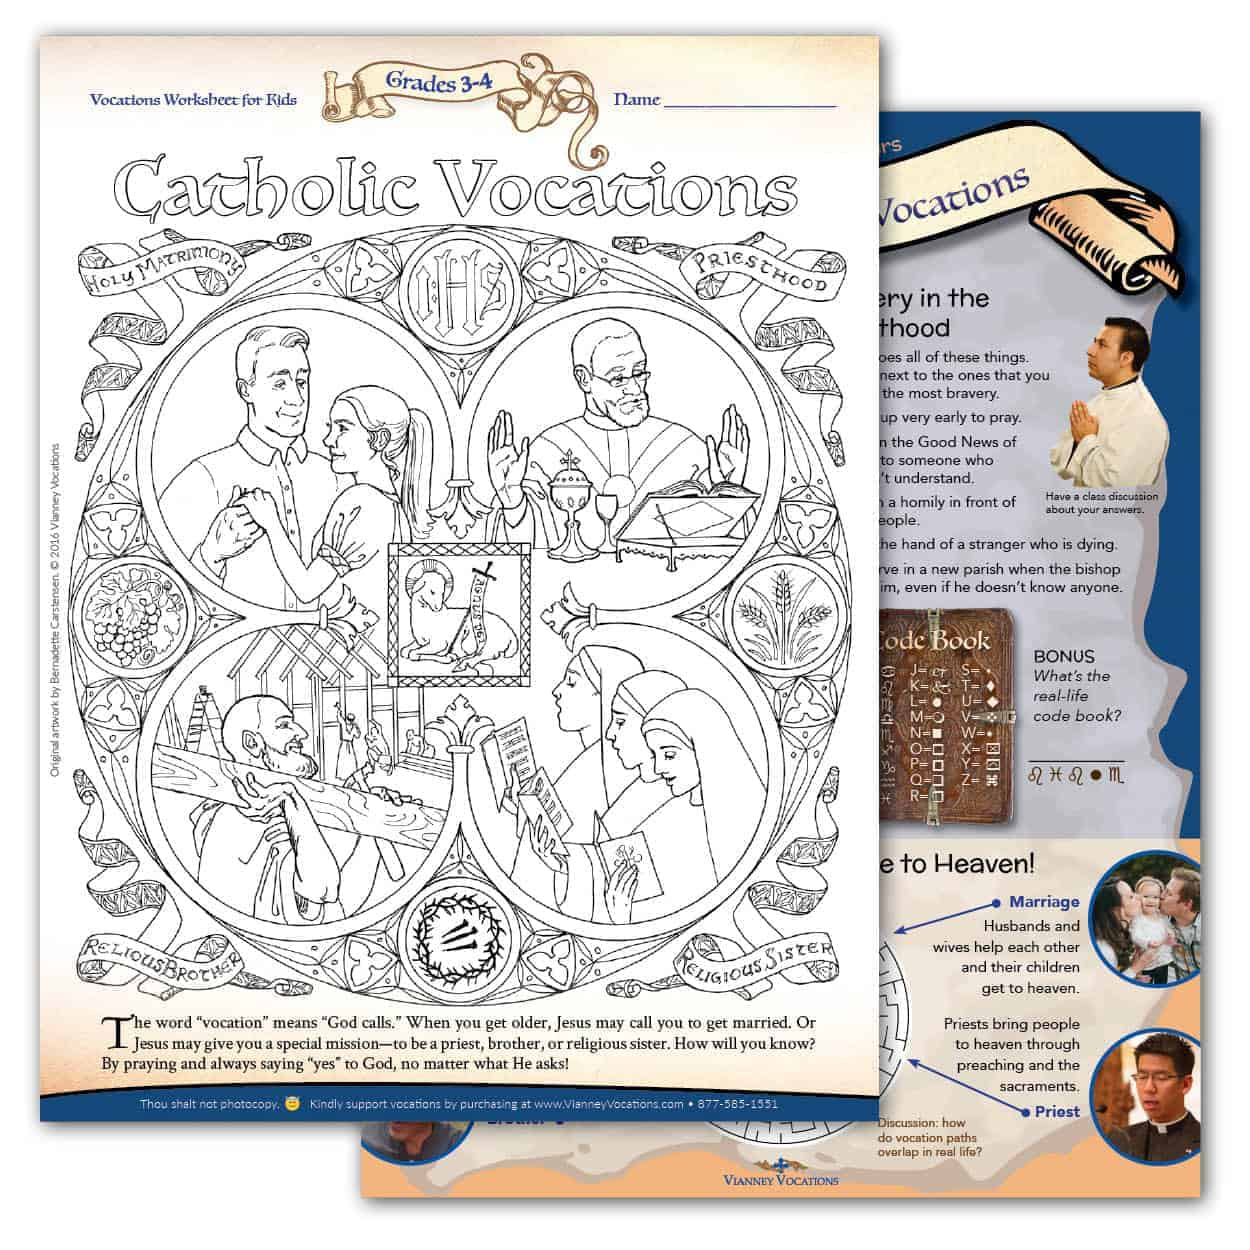 Vocations Worksheet for Kids - Grades 3-4 - Vianney Vocations